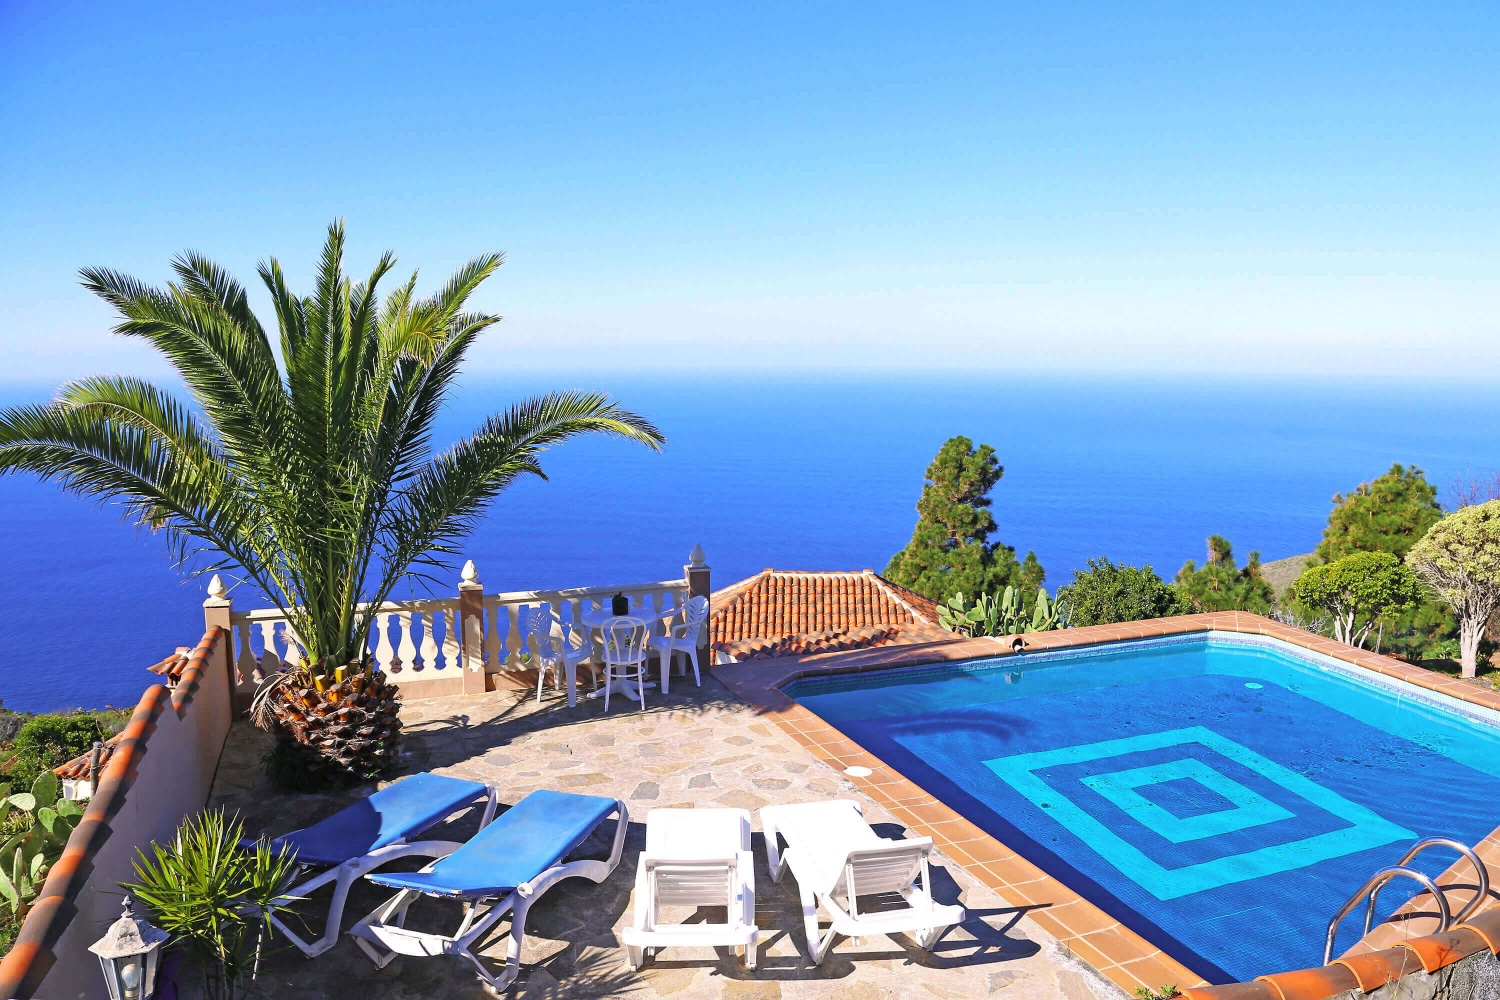 Rustical holiday house with private pool and stunning views of the sea and mountains in Puntagorda, on the island of La Palma